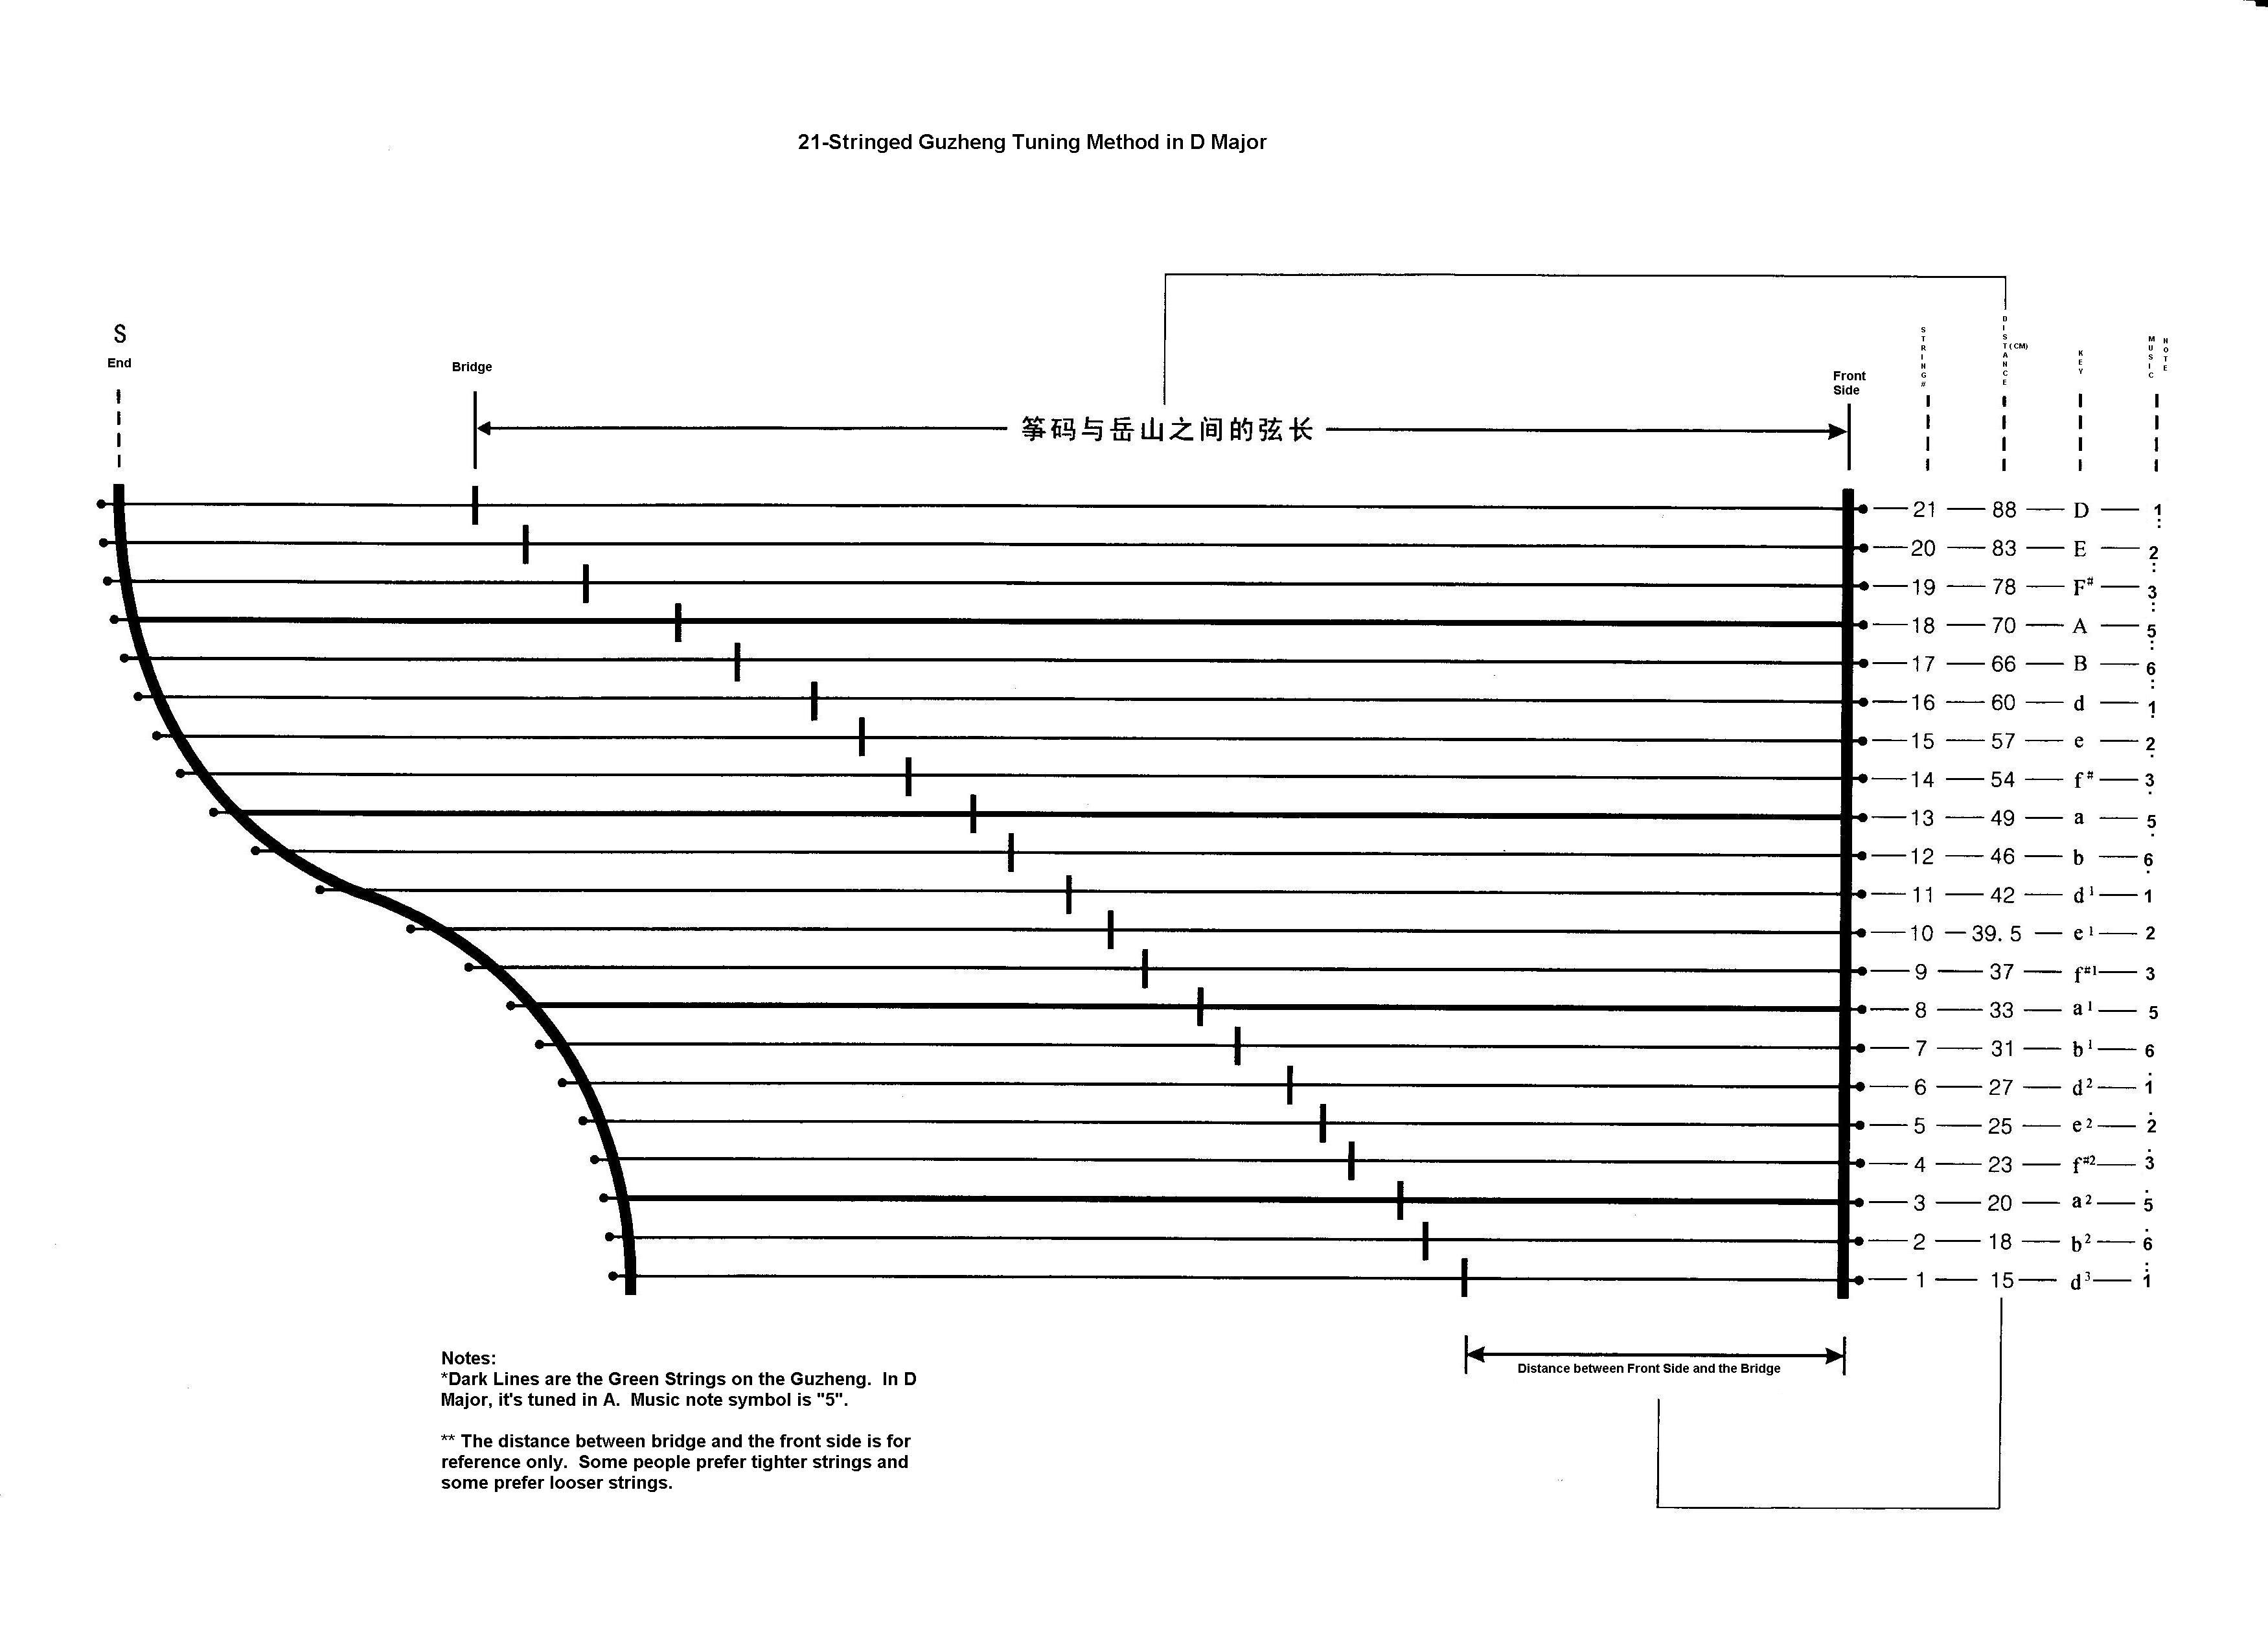 hight resolution of guzheng tuning table string names distances for placing bridges and reference for music notation